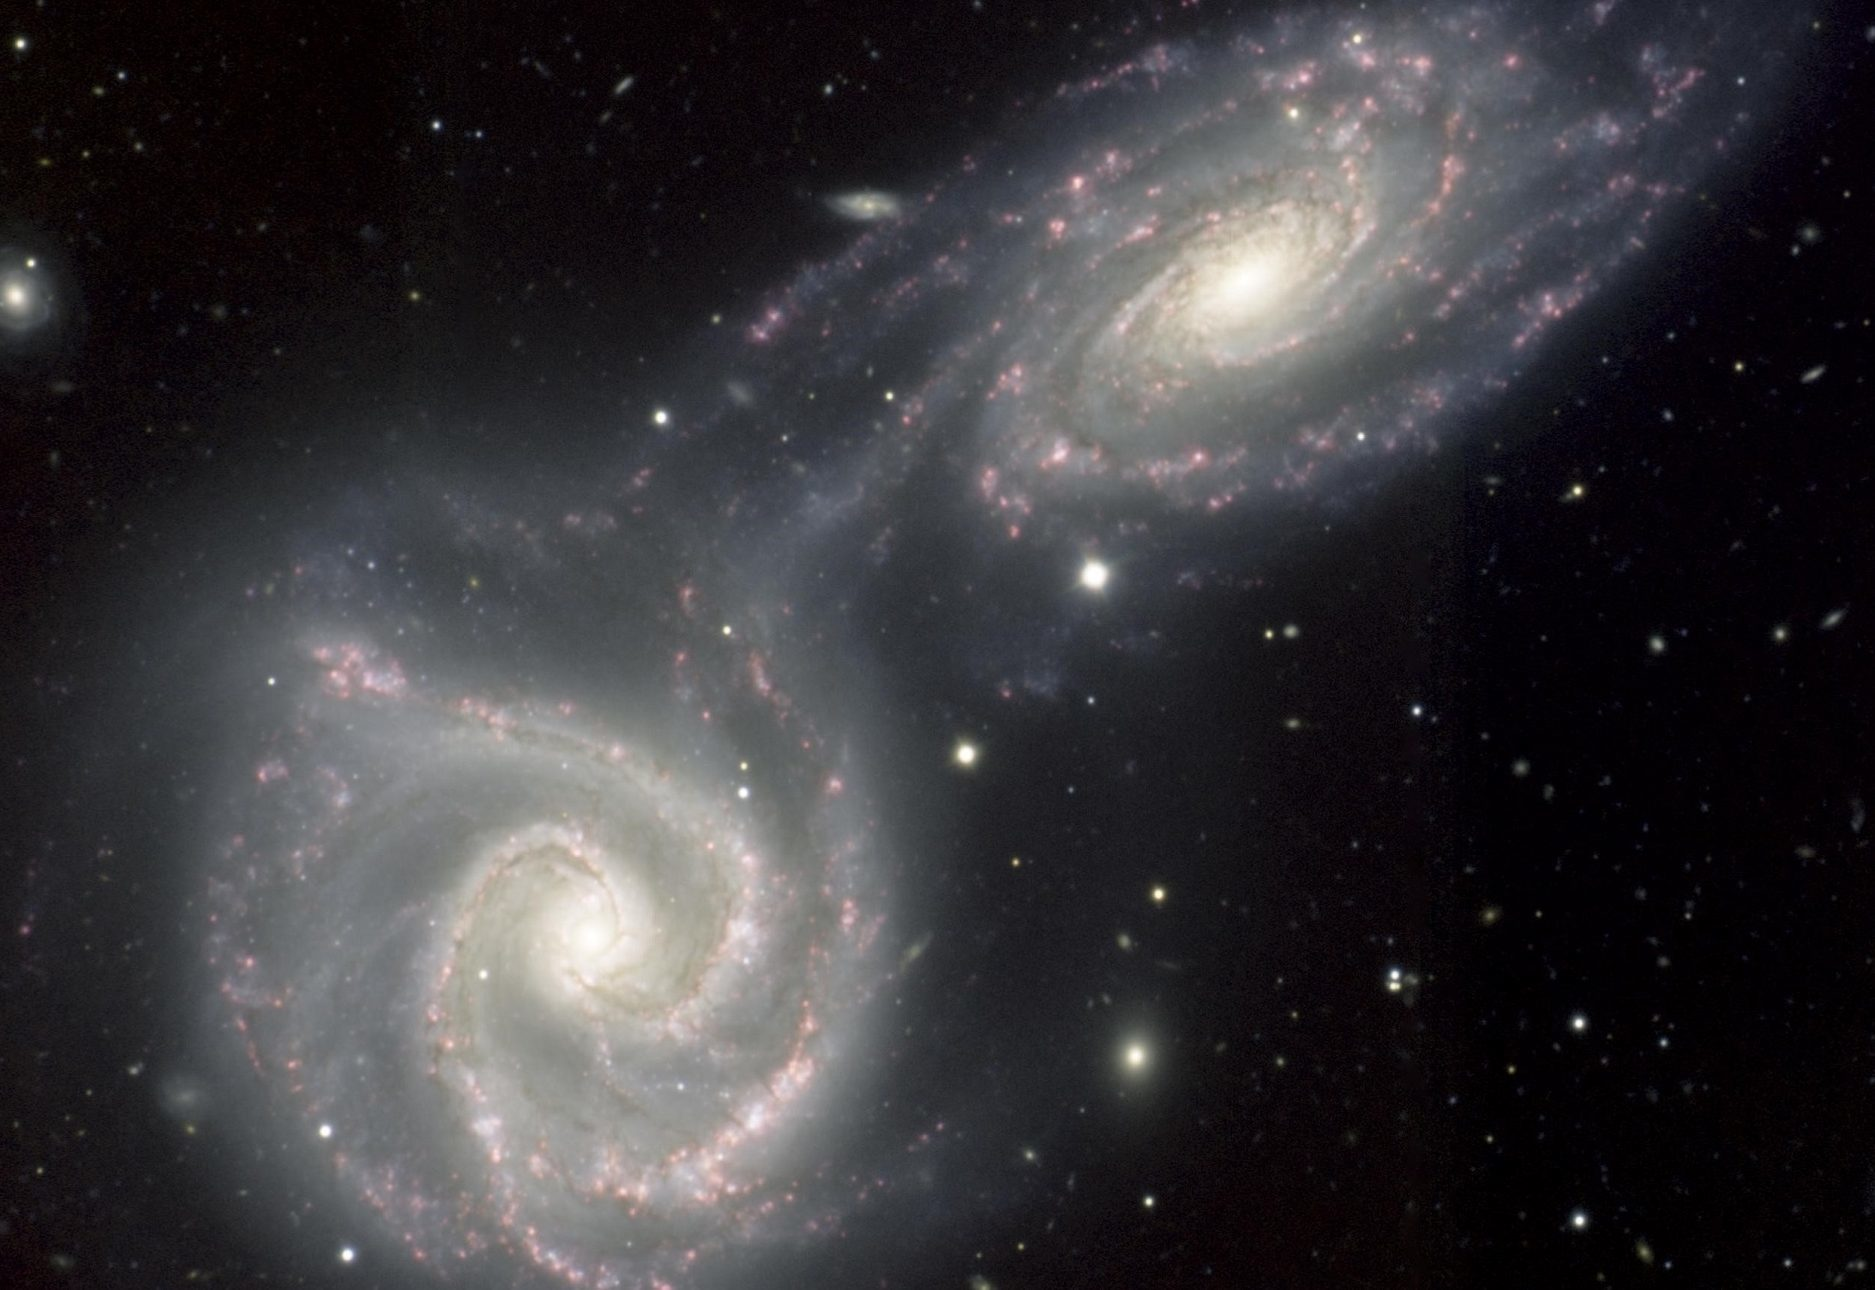 A present-day near-miss of two spiral galaxies NGC 5426 and NGC 5427, which may be comparable to the early flyby of the Andromeda Galaxy past our own.